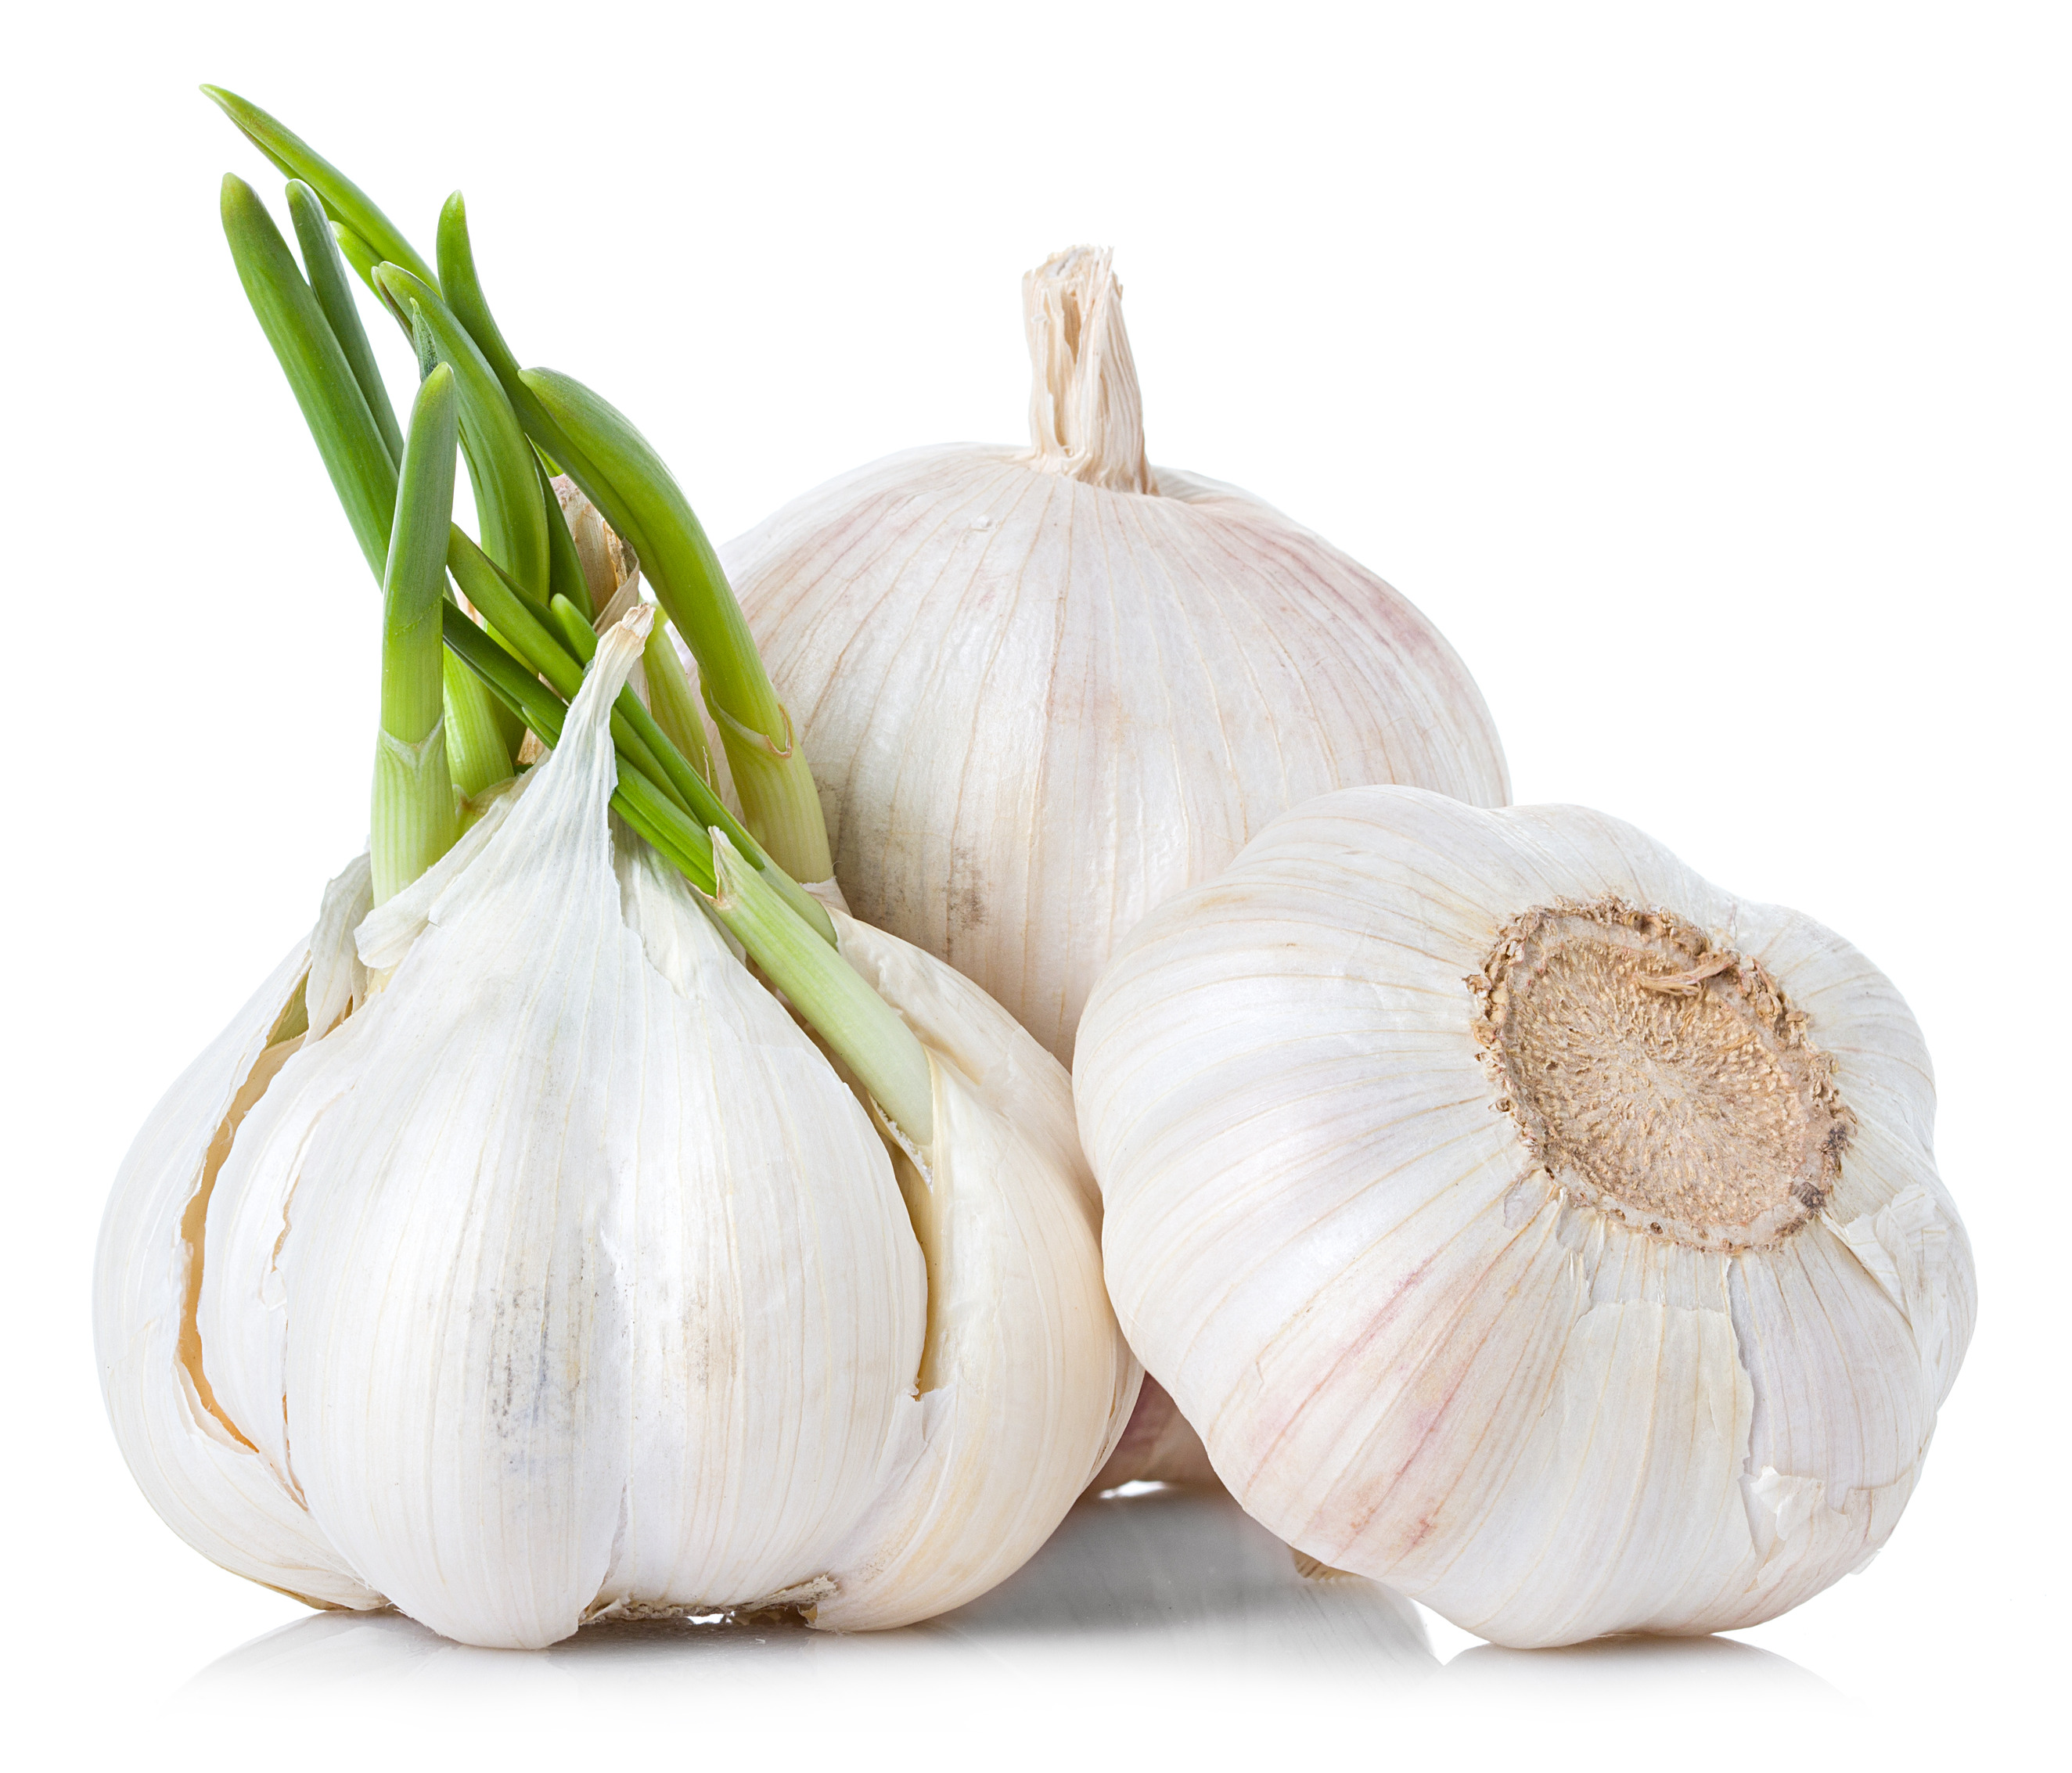 5 Signs You Have A Garlic Intolerance